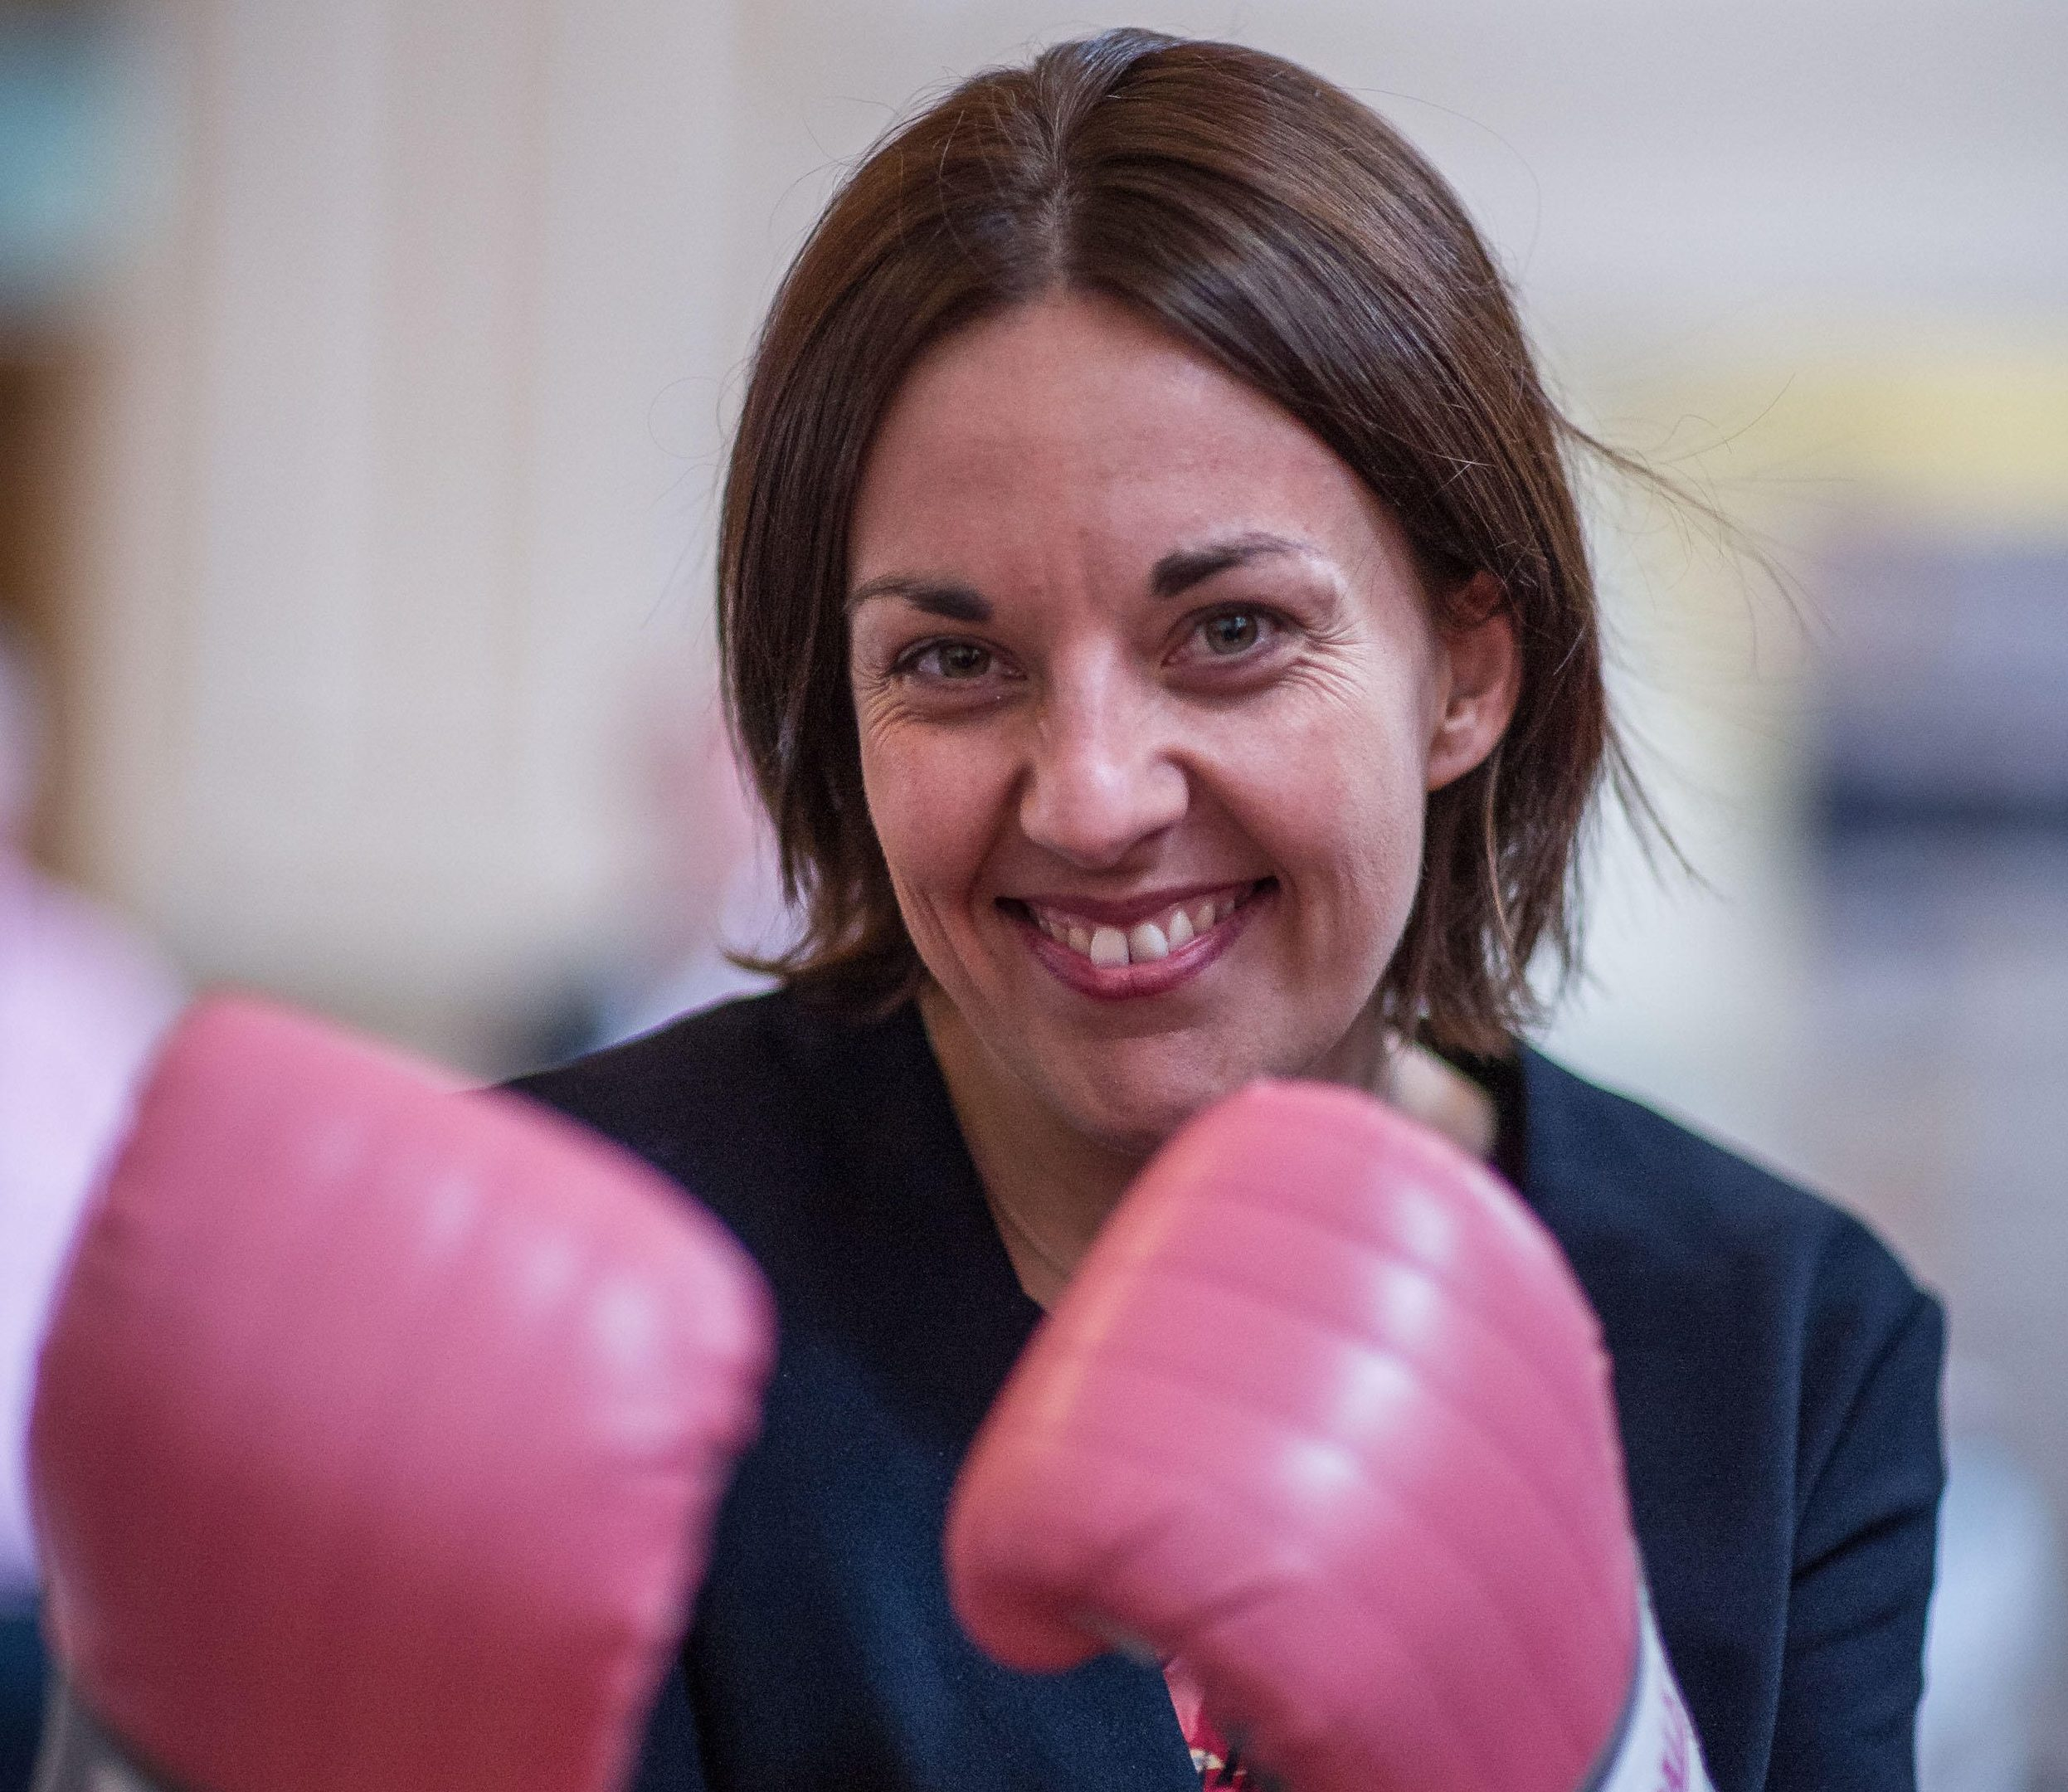 Former Scottish Labour Leader Kezia Dugdale (Steven Scott Taylor / Alamy)